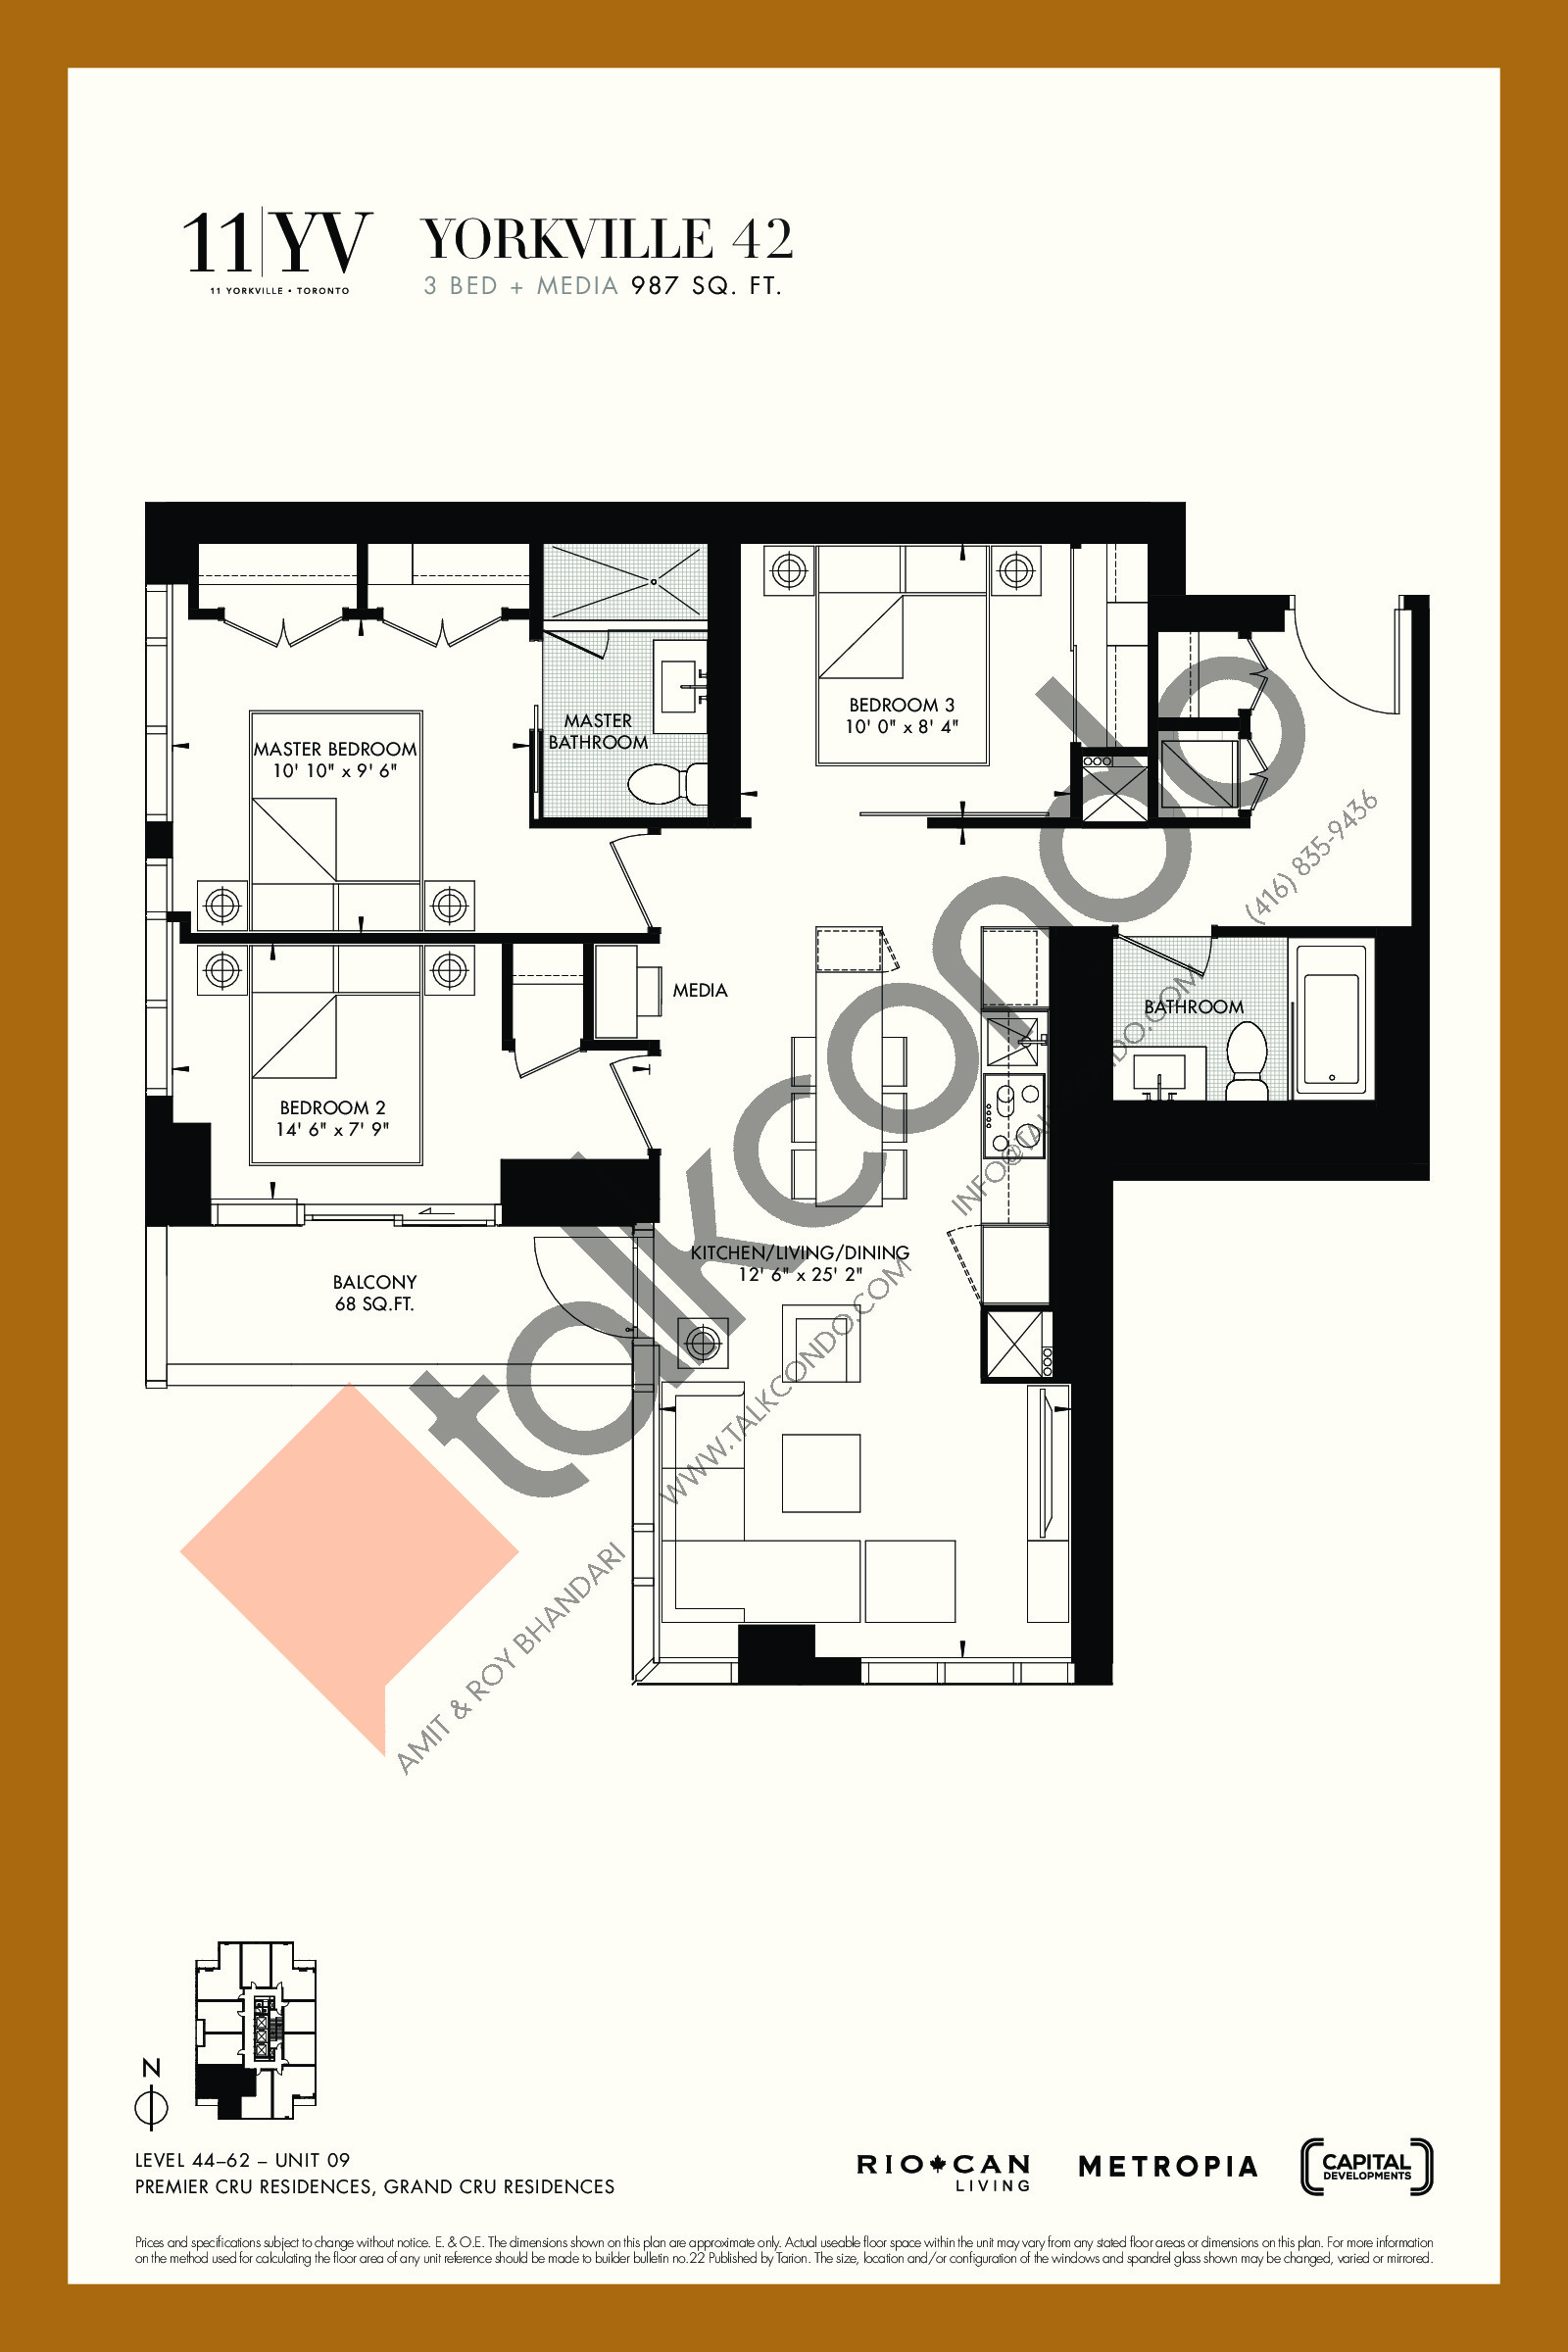 Yorkville 42 Floor Plan at 11YV Condos - 987 sq.ft